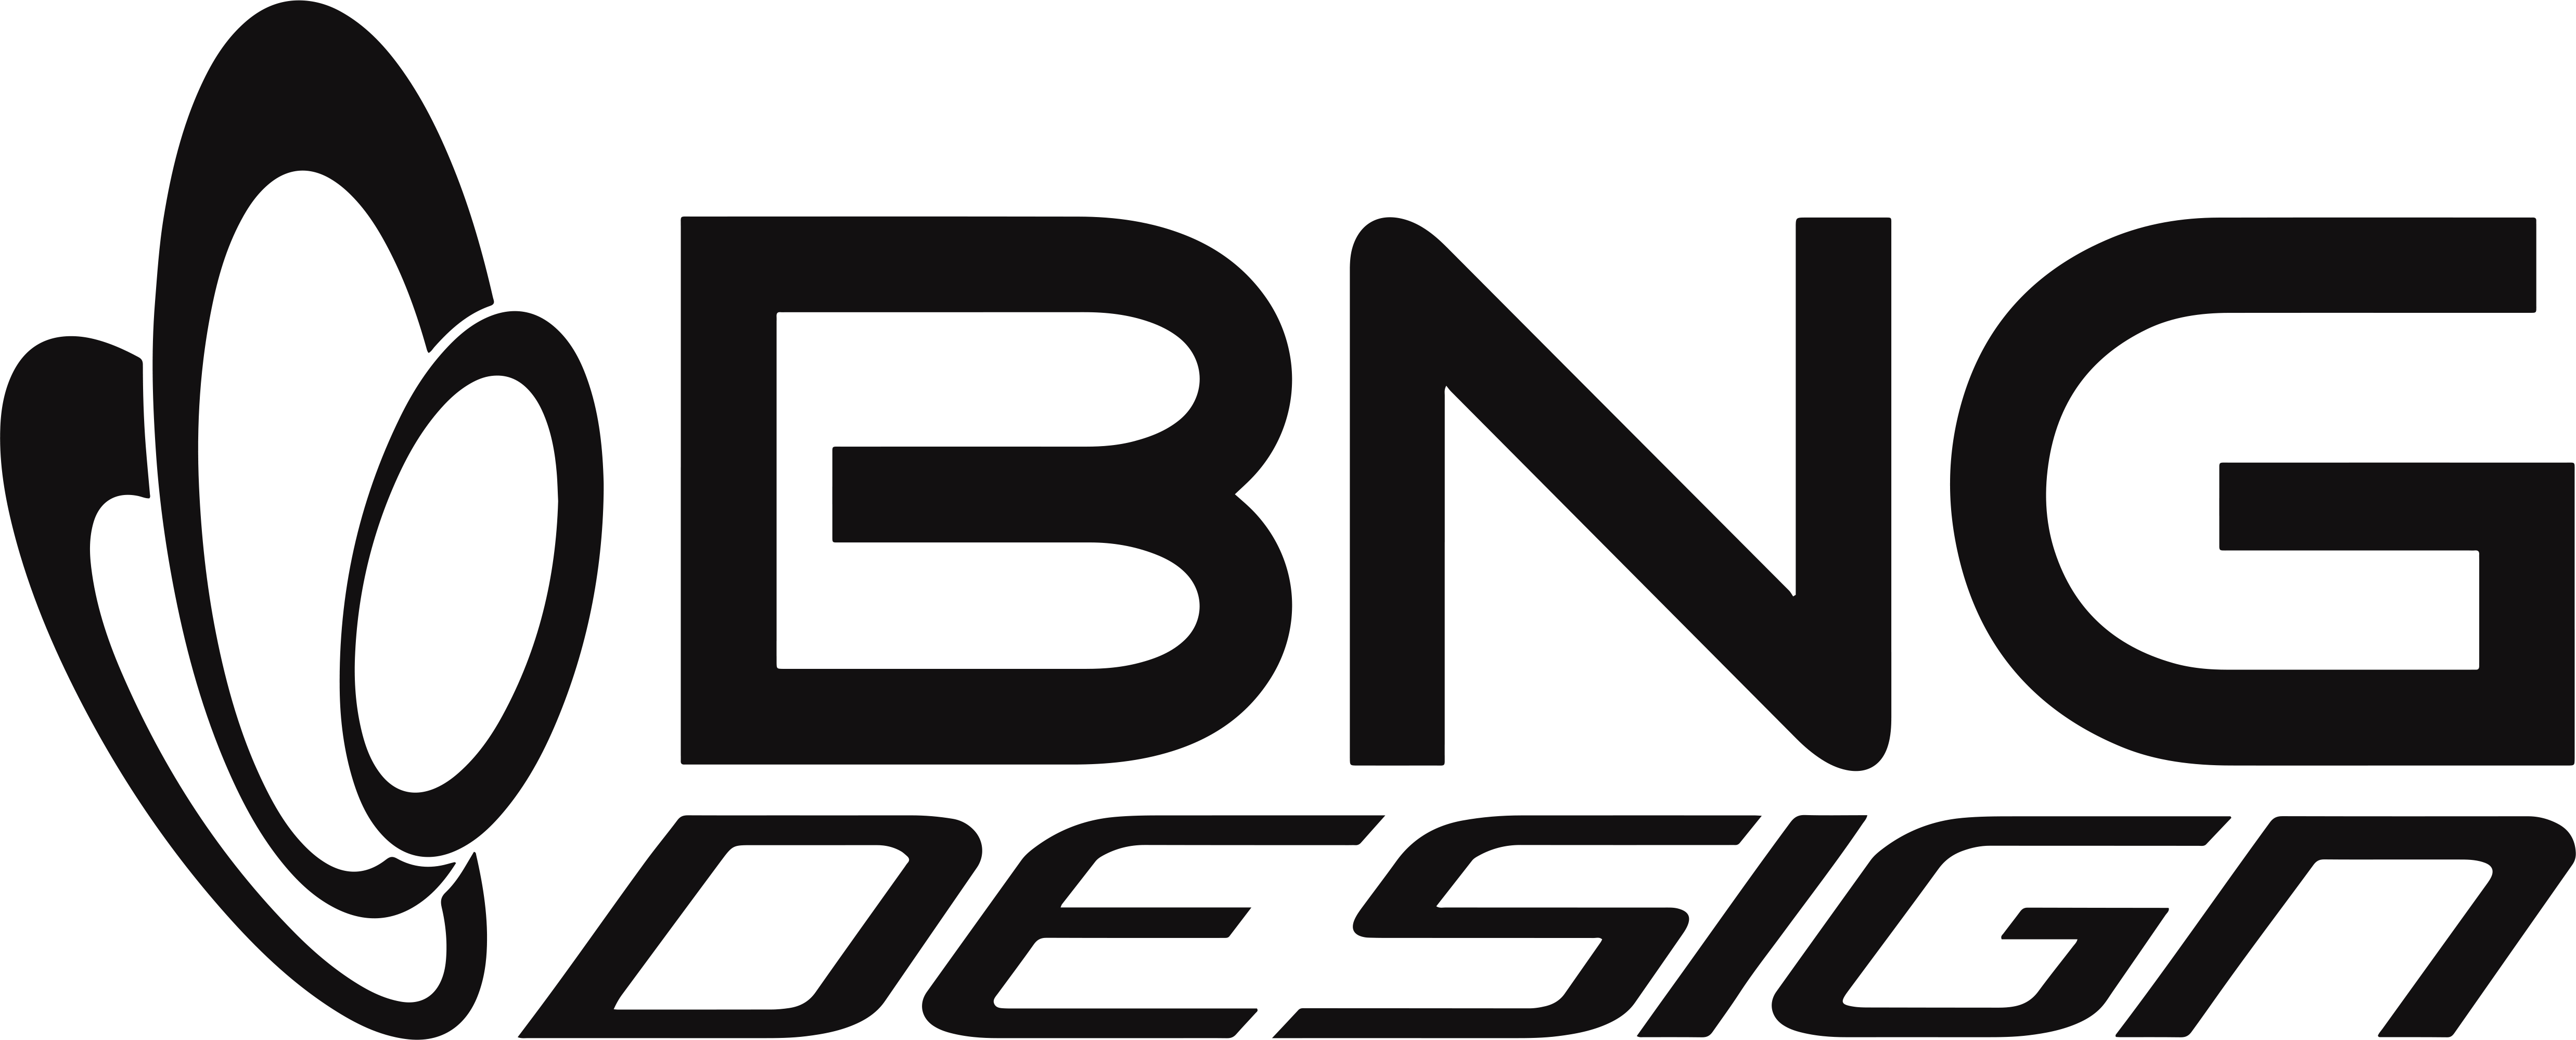 BNG Design Announces New Line Of Promotional Branding Services For Businesses